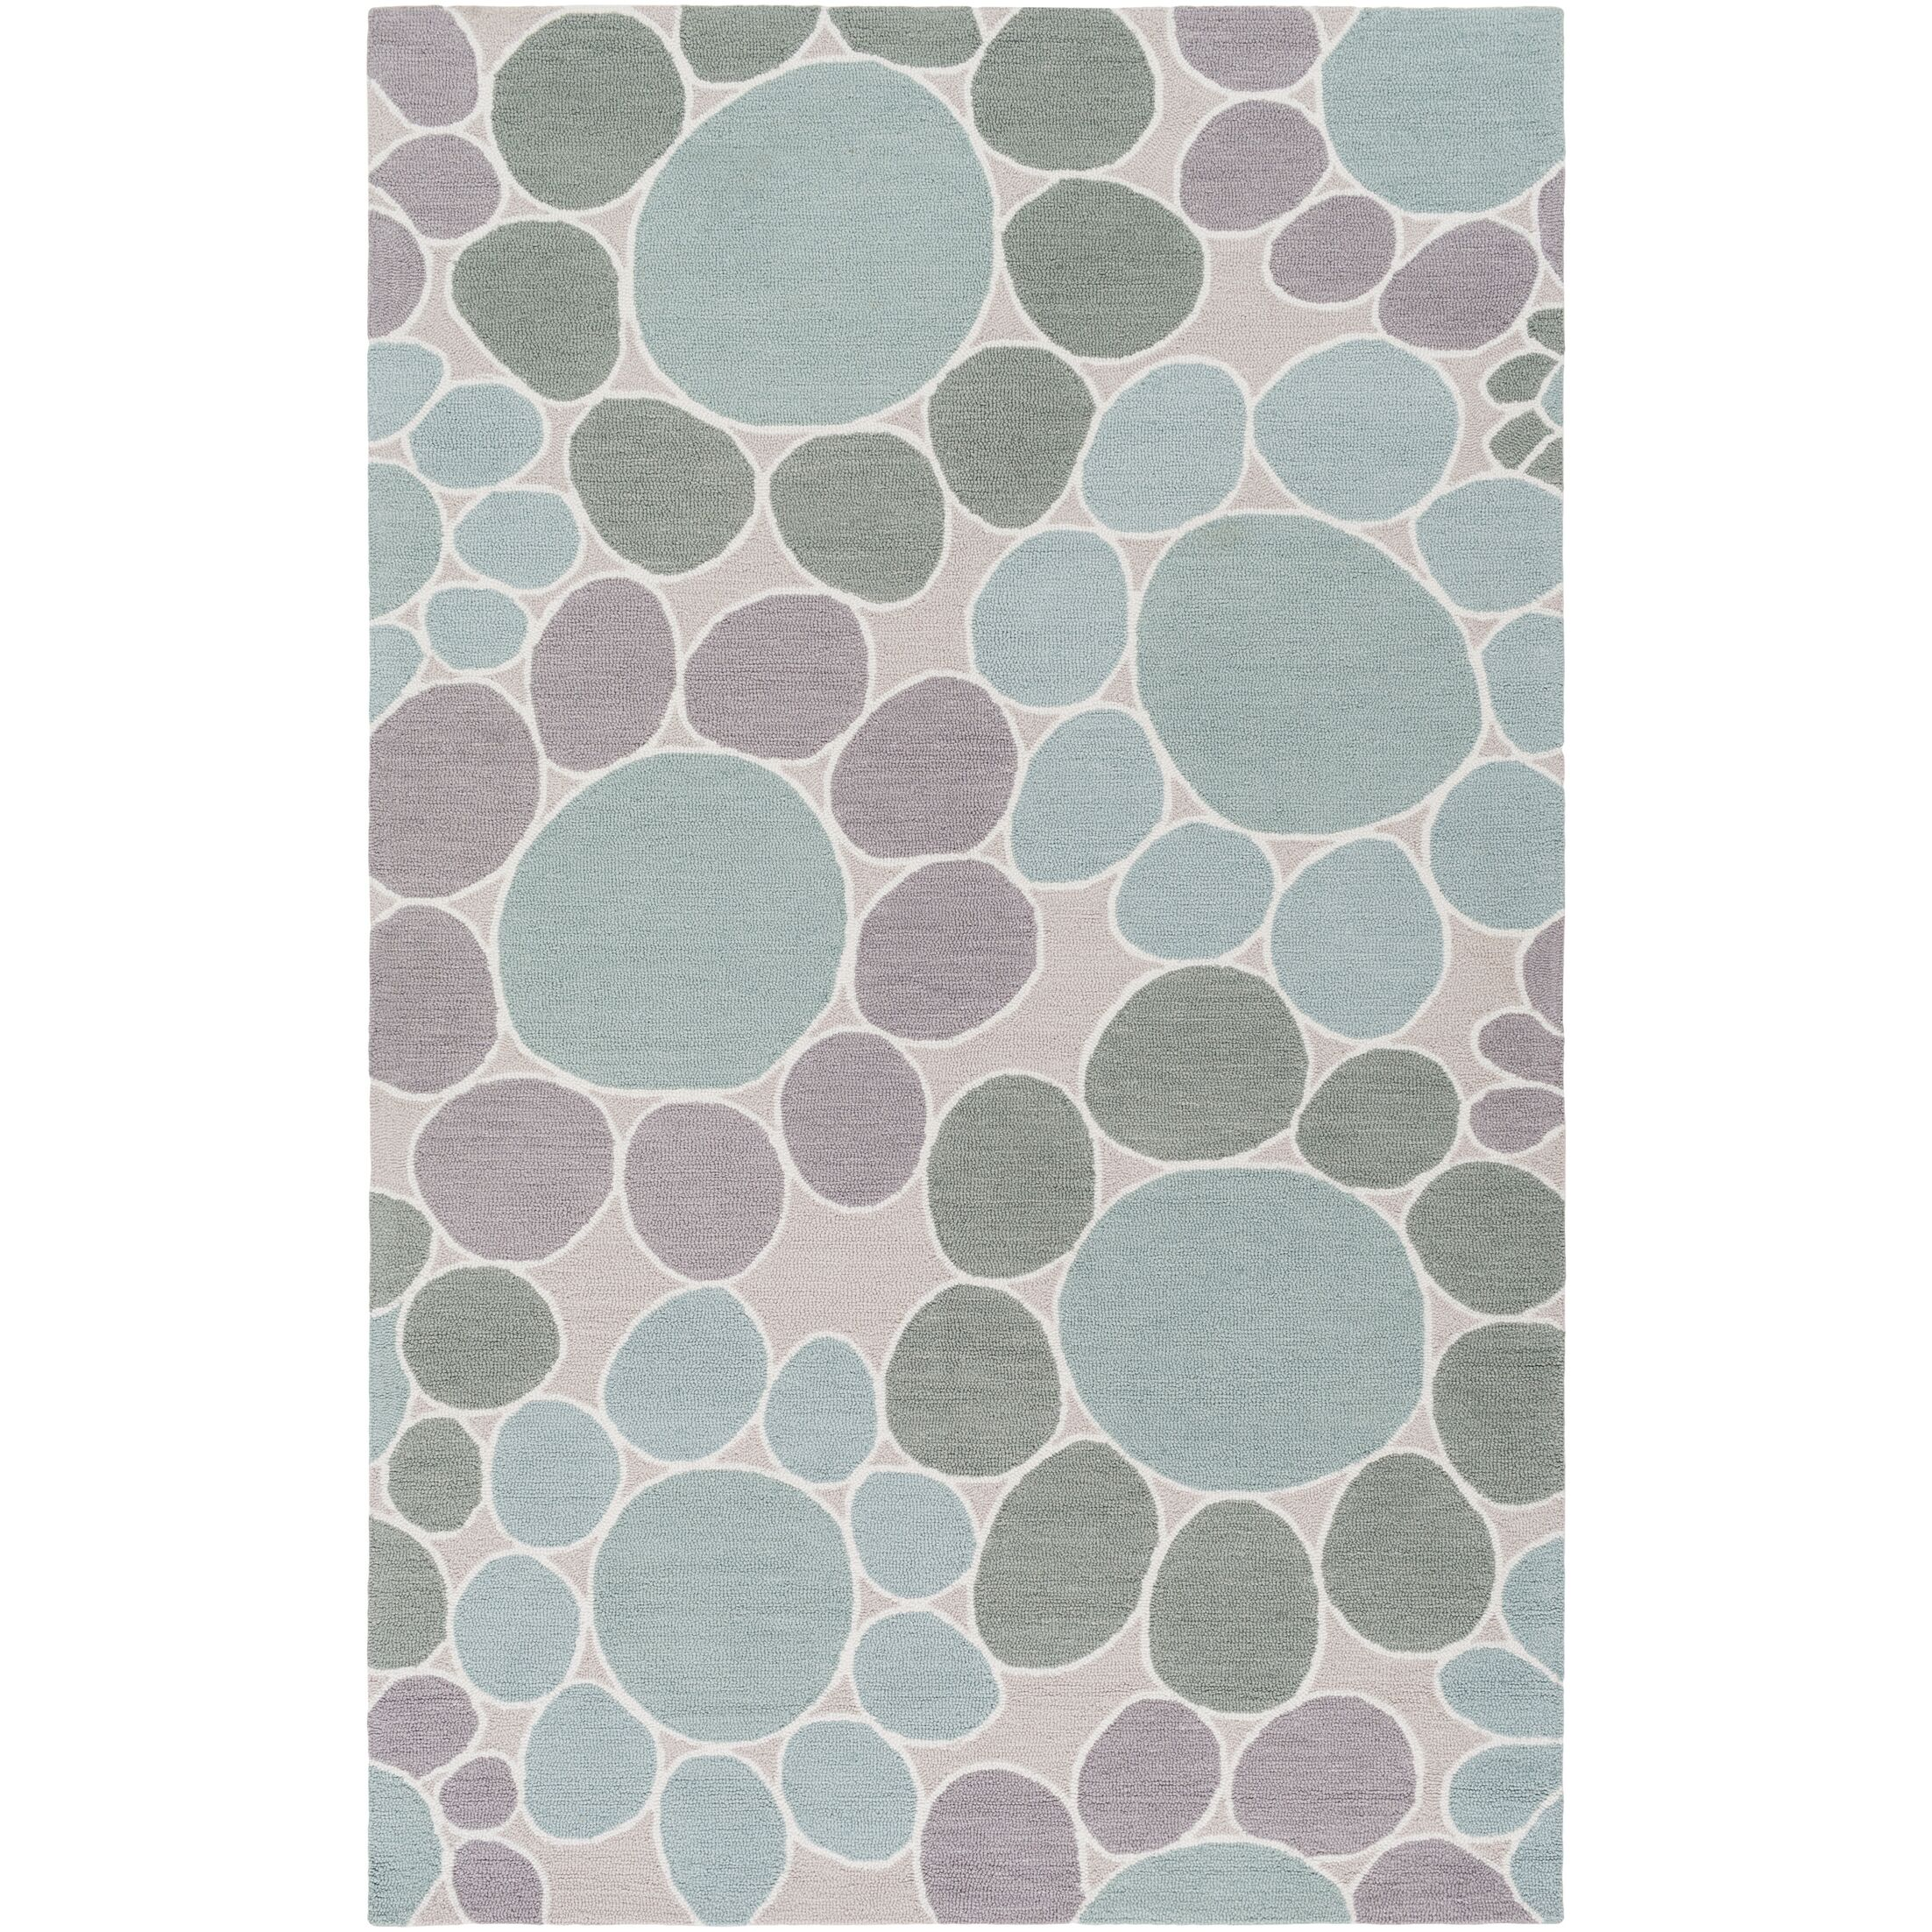 Blake Hand-Hooked Taupe Area Rug Rug Size: Rectangle 3' x 5'